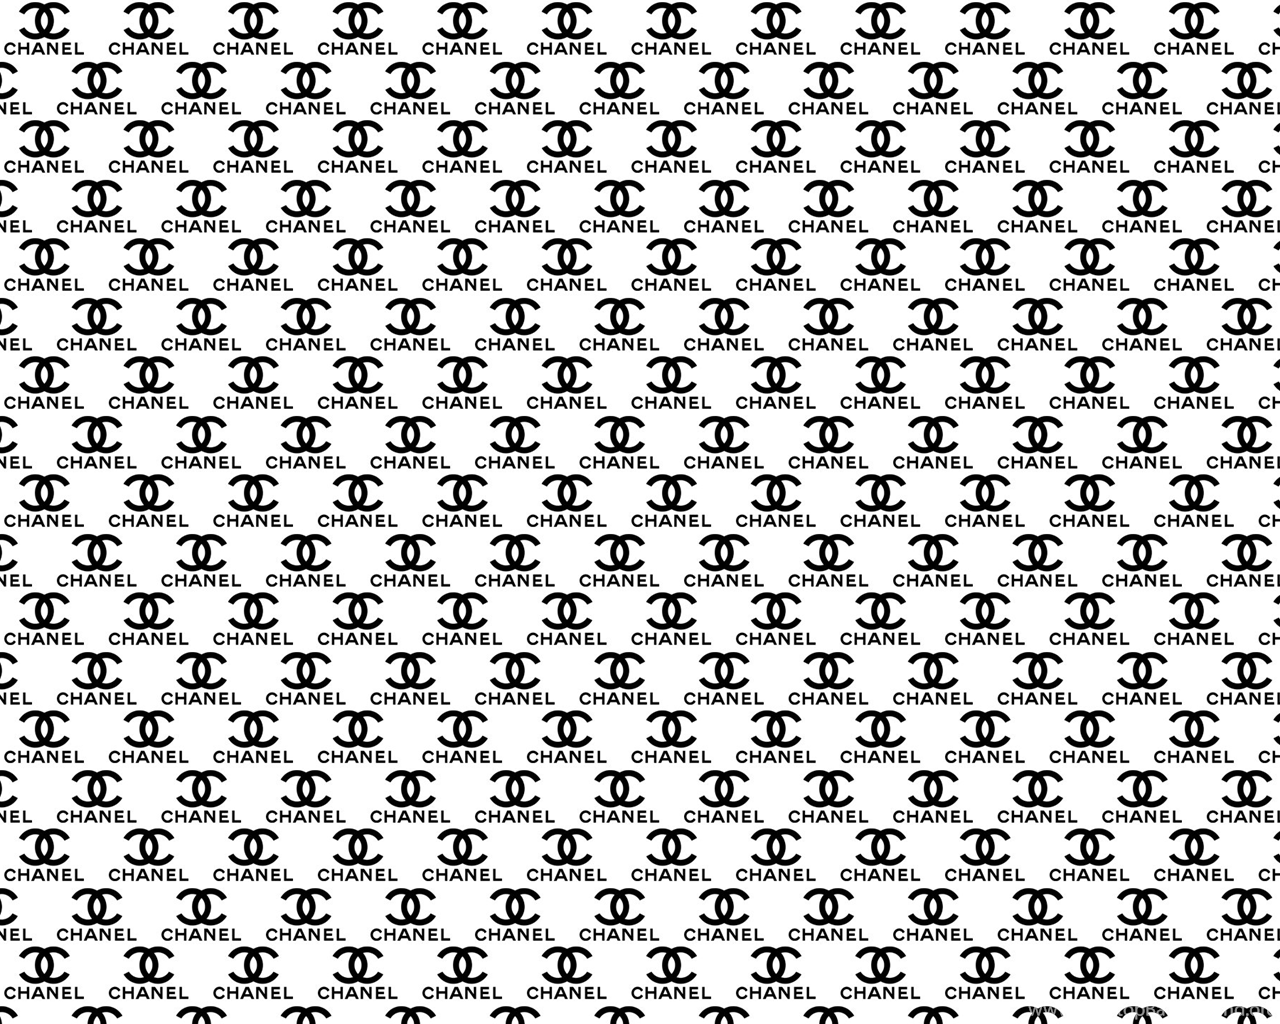 Chanel Wallpapers Desktop Background